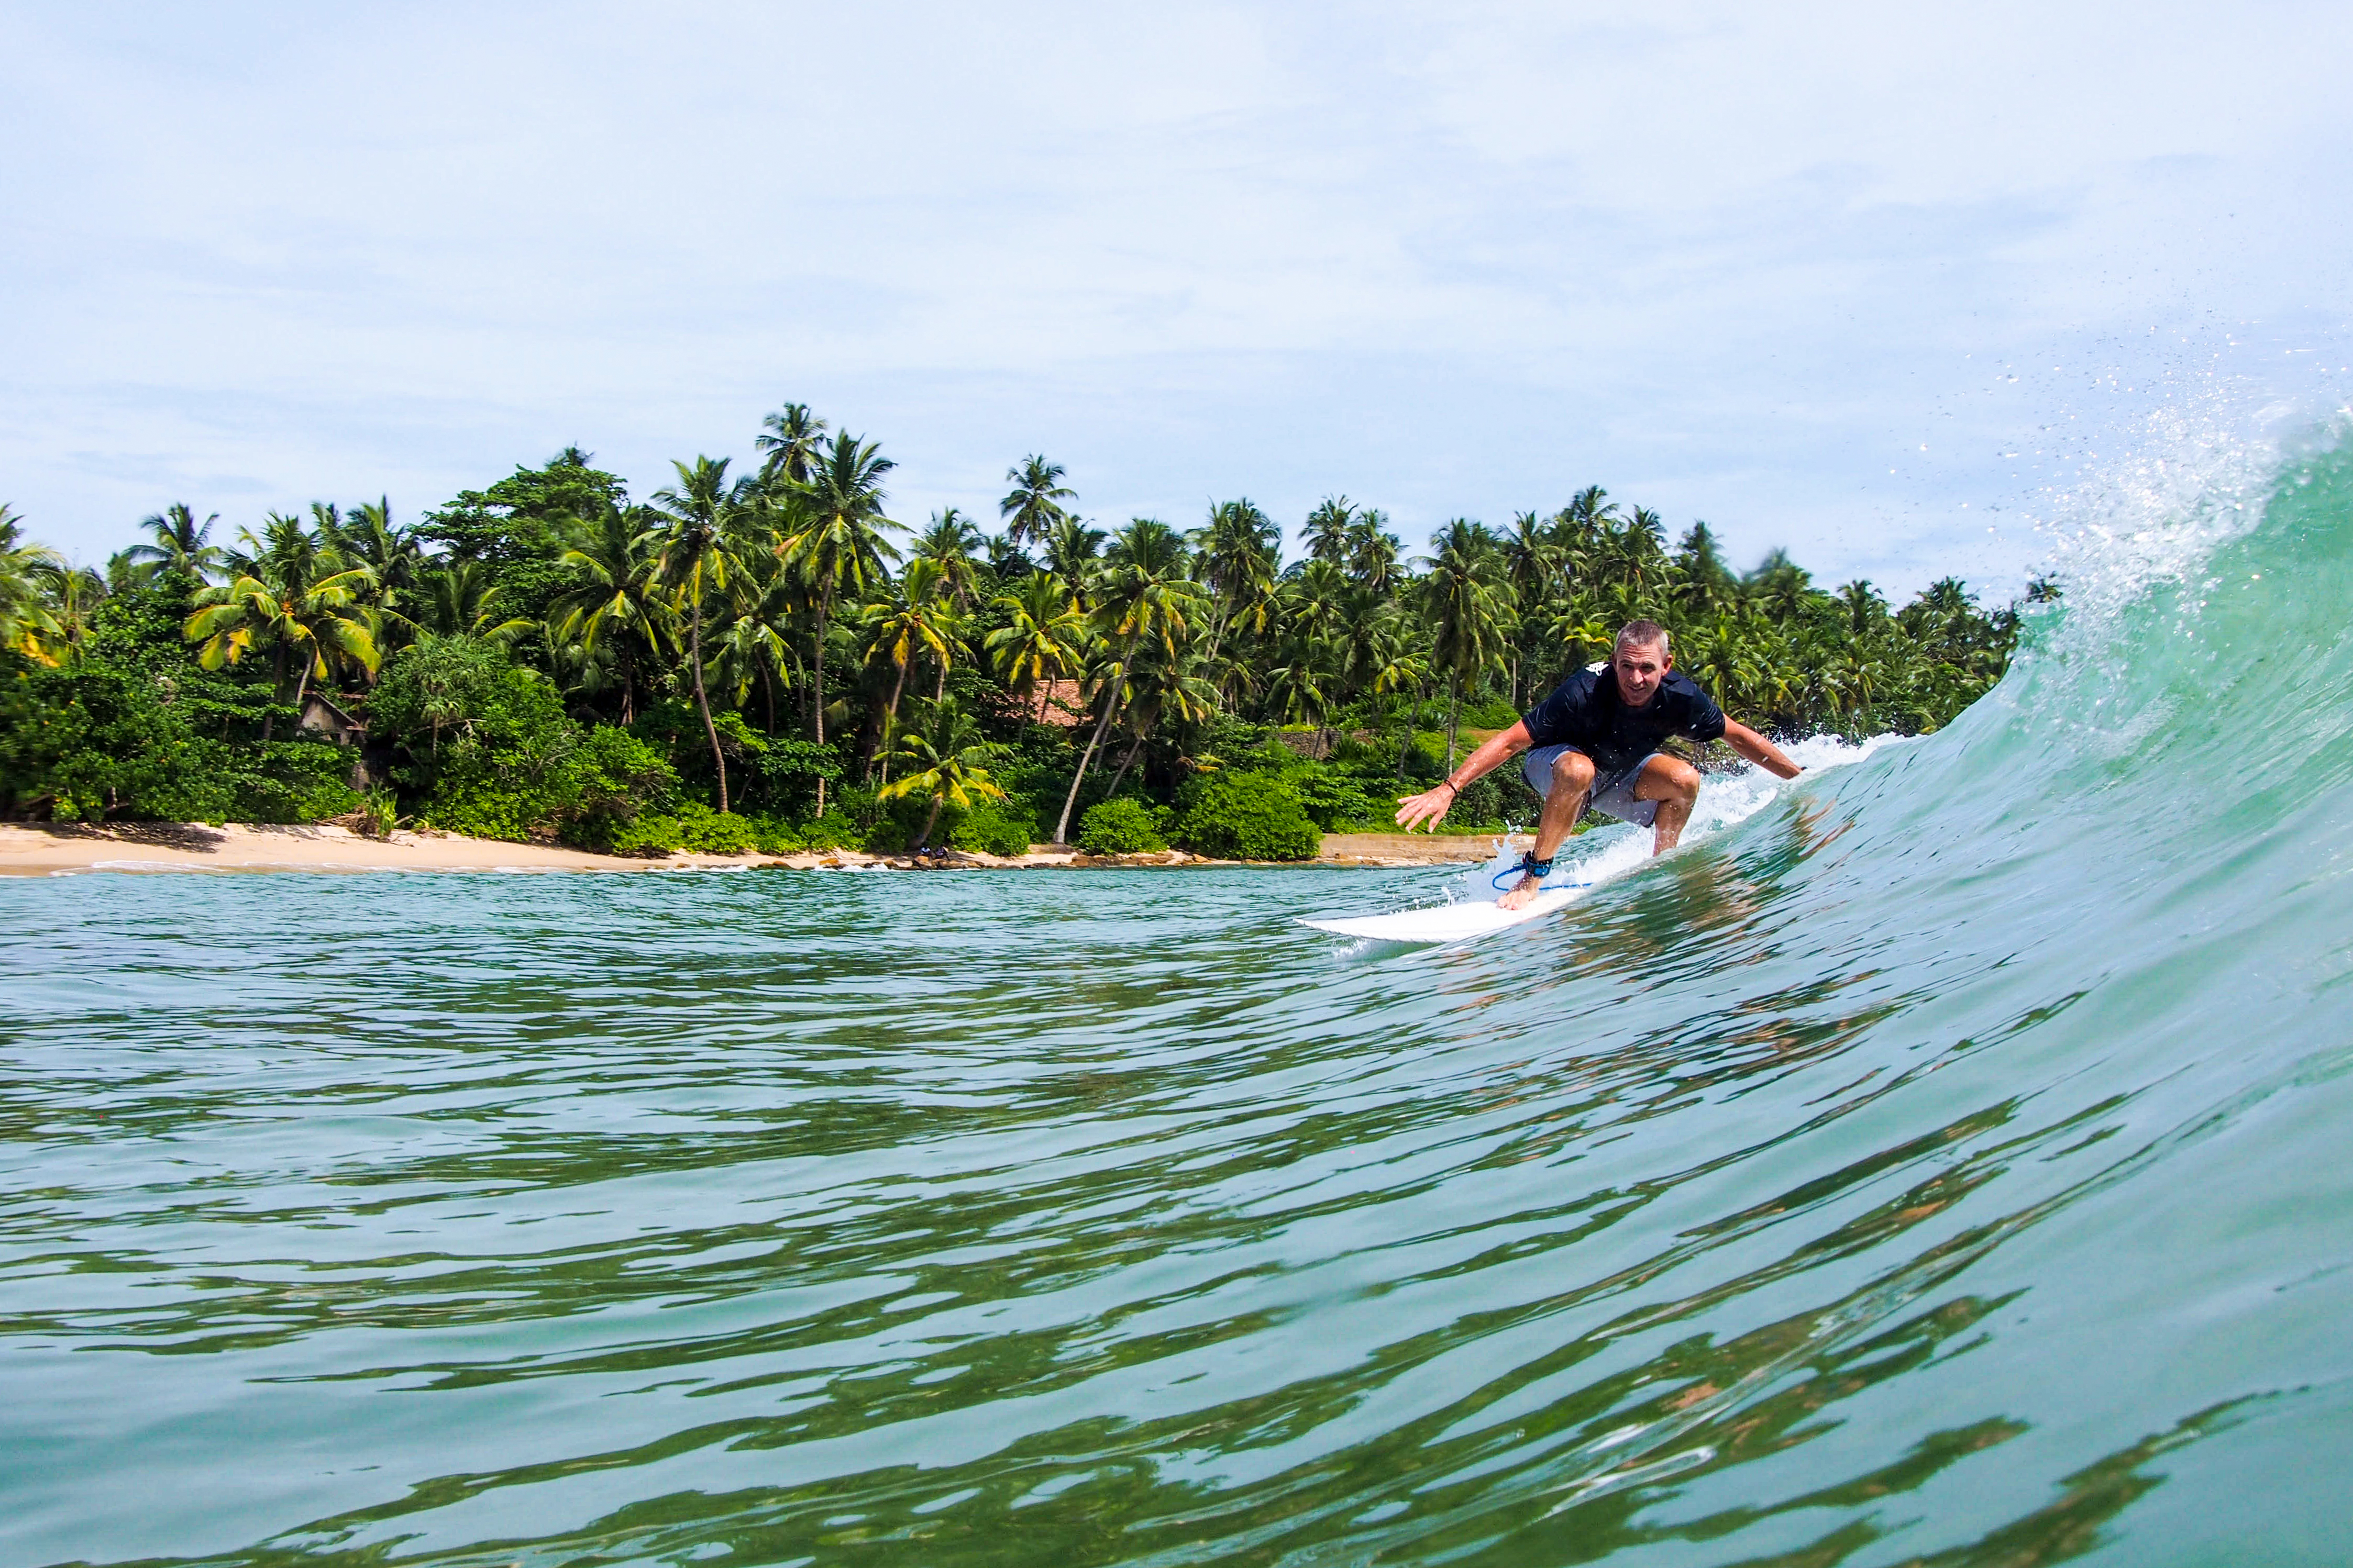 Chris-Prewitt at Anantara-Tangalle Surfing Tropic